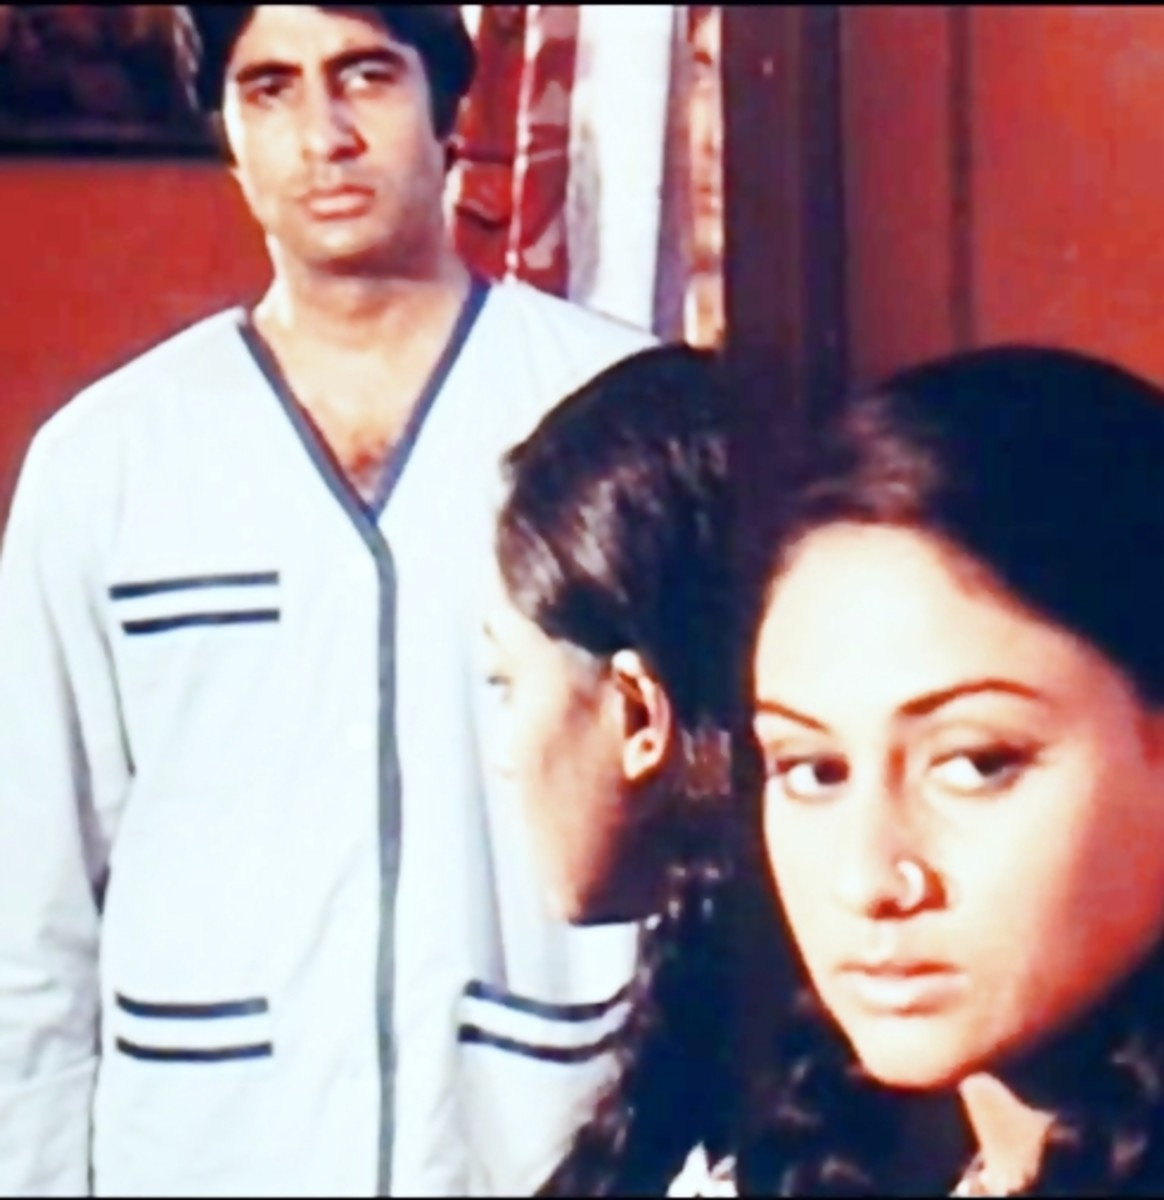 Coming together of Amitabh Bachchan and Jaya Bhaduri changed a lot in Bollywood as well as in their own lives